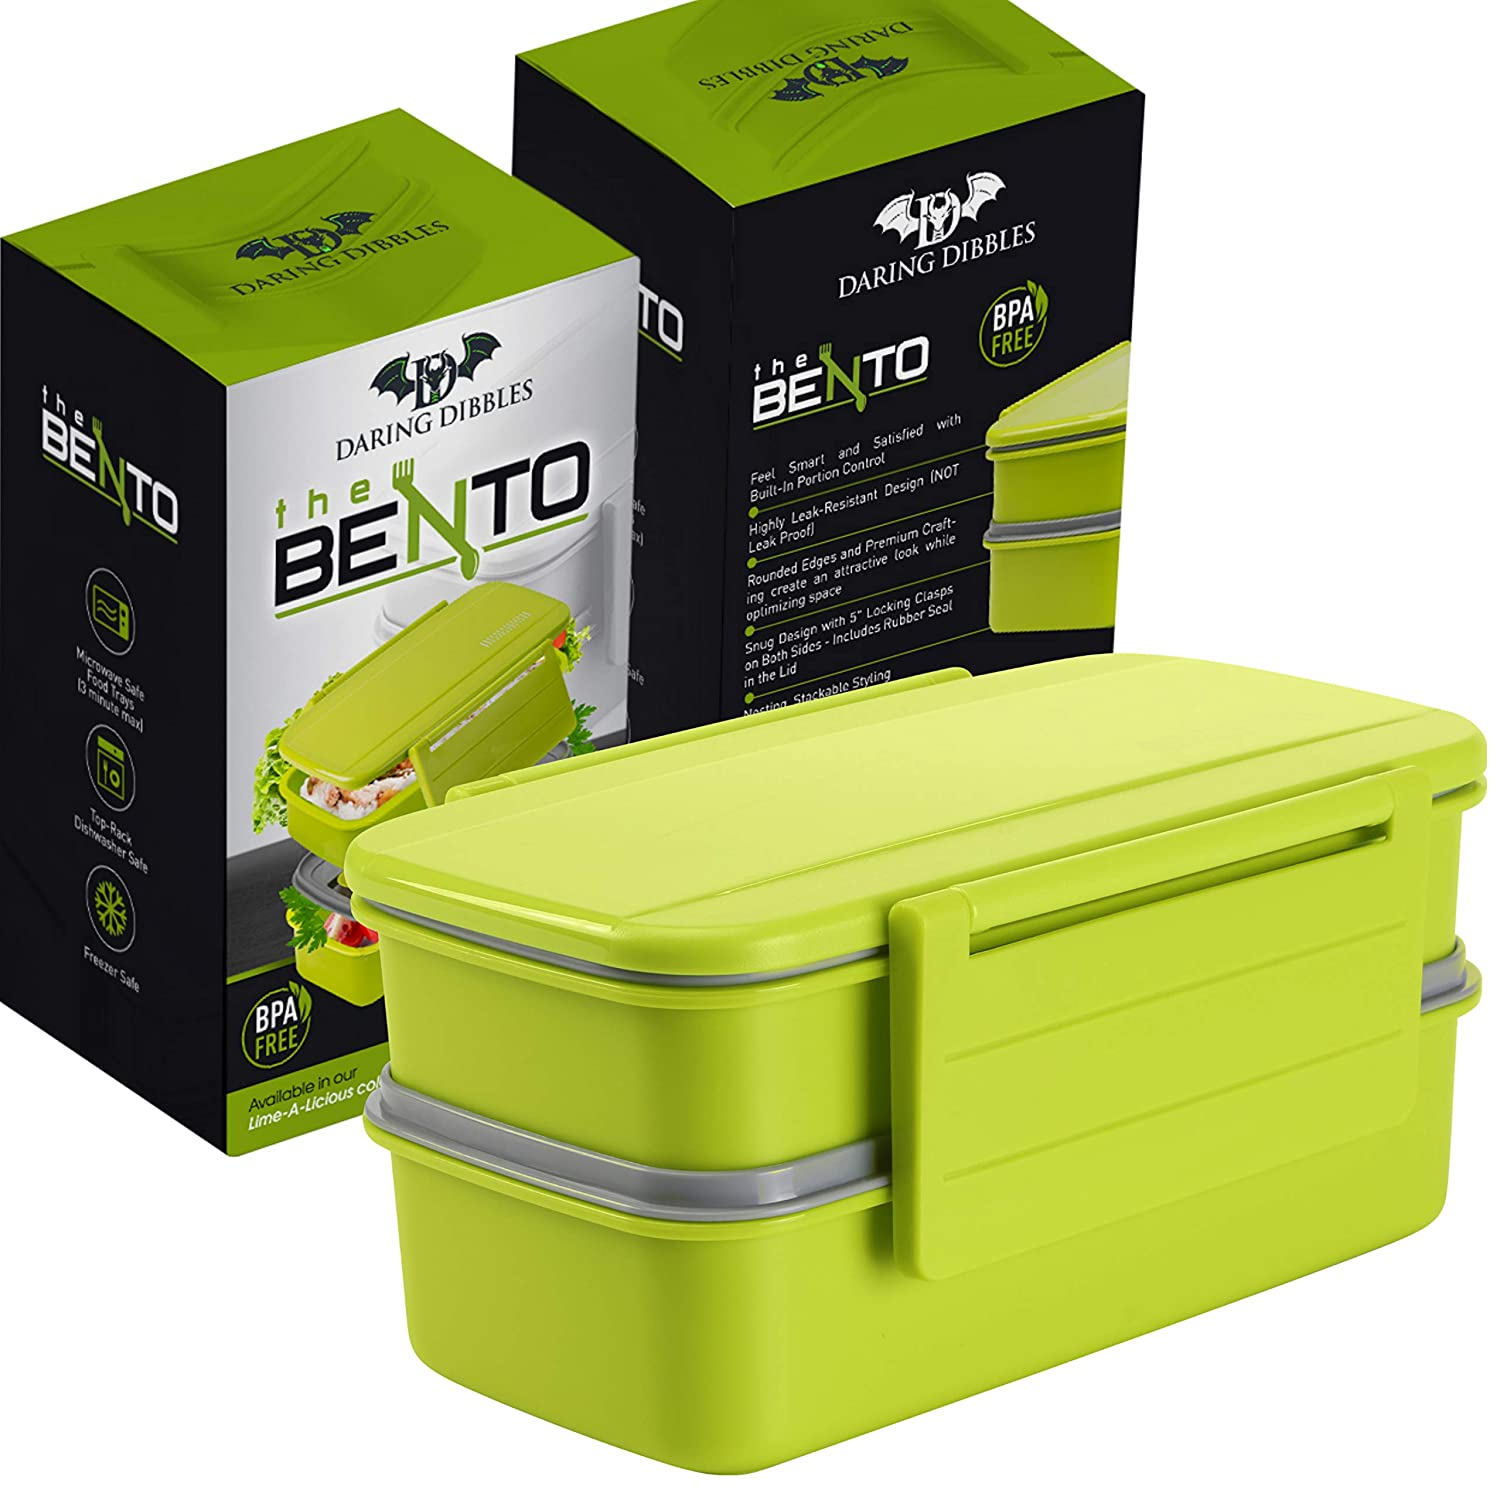 Lunch Box For Women Bento Lunch Box Container 5.5 Cup Capacity Snack Container and Utensils Daring Dibbles DD-BB1